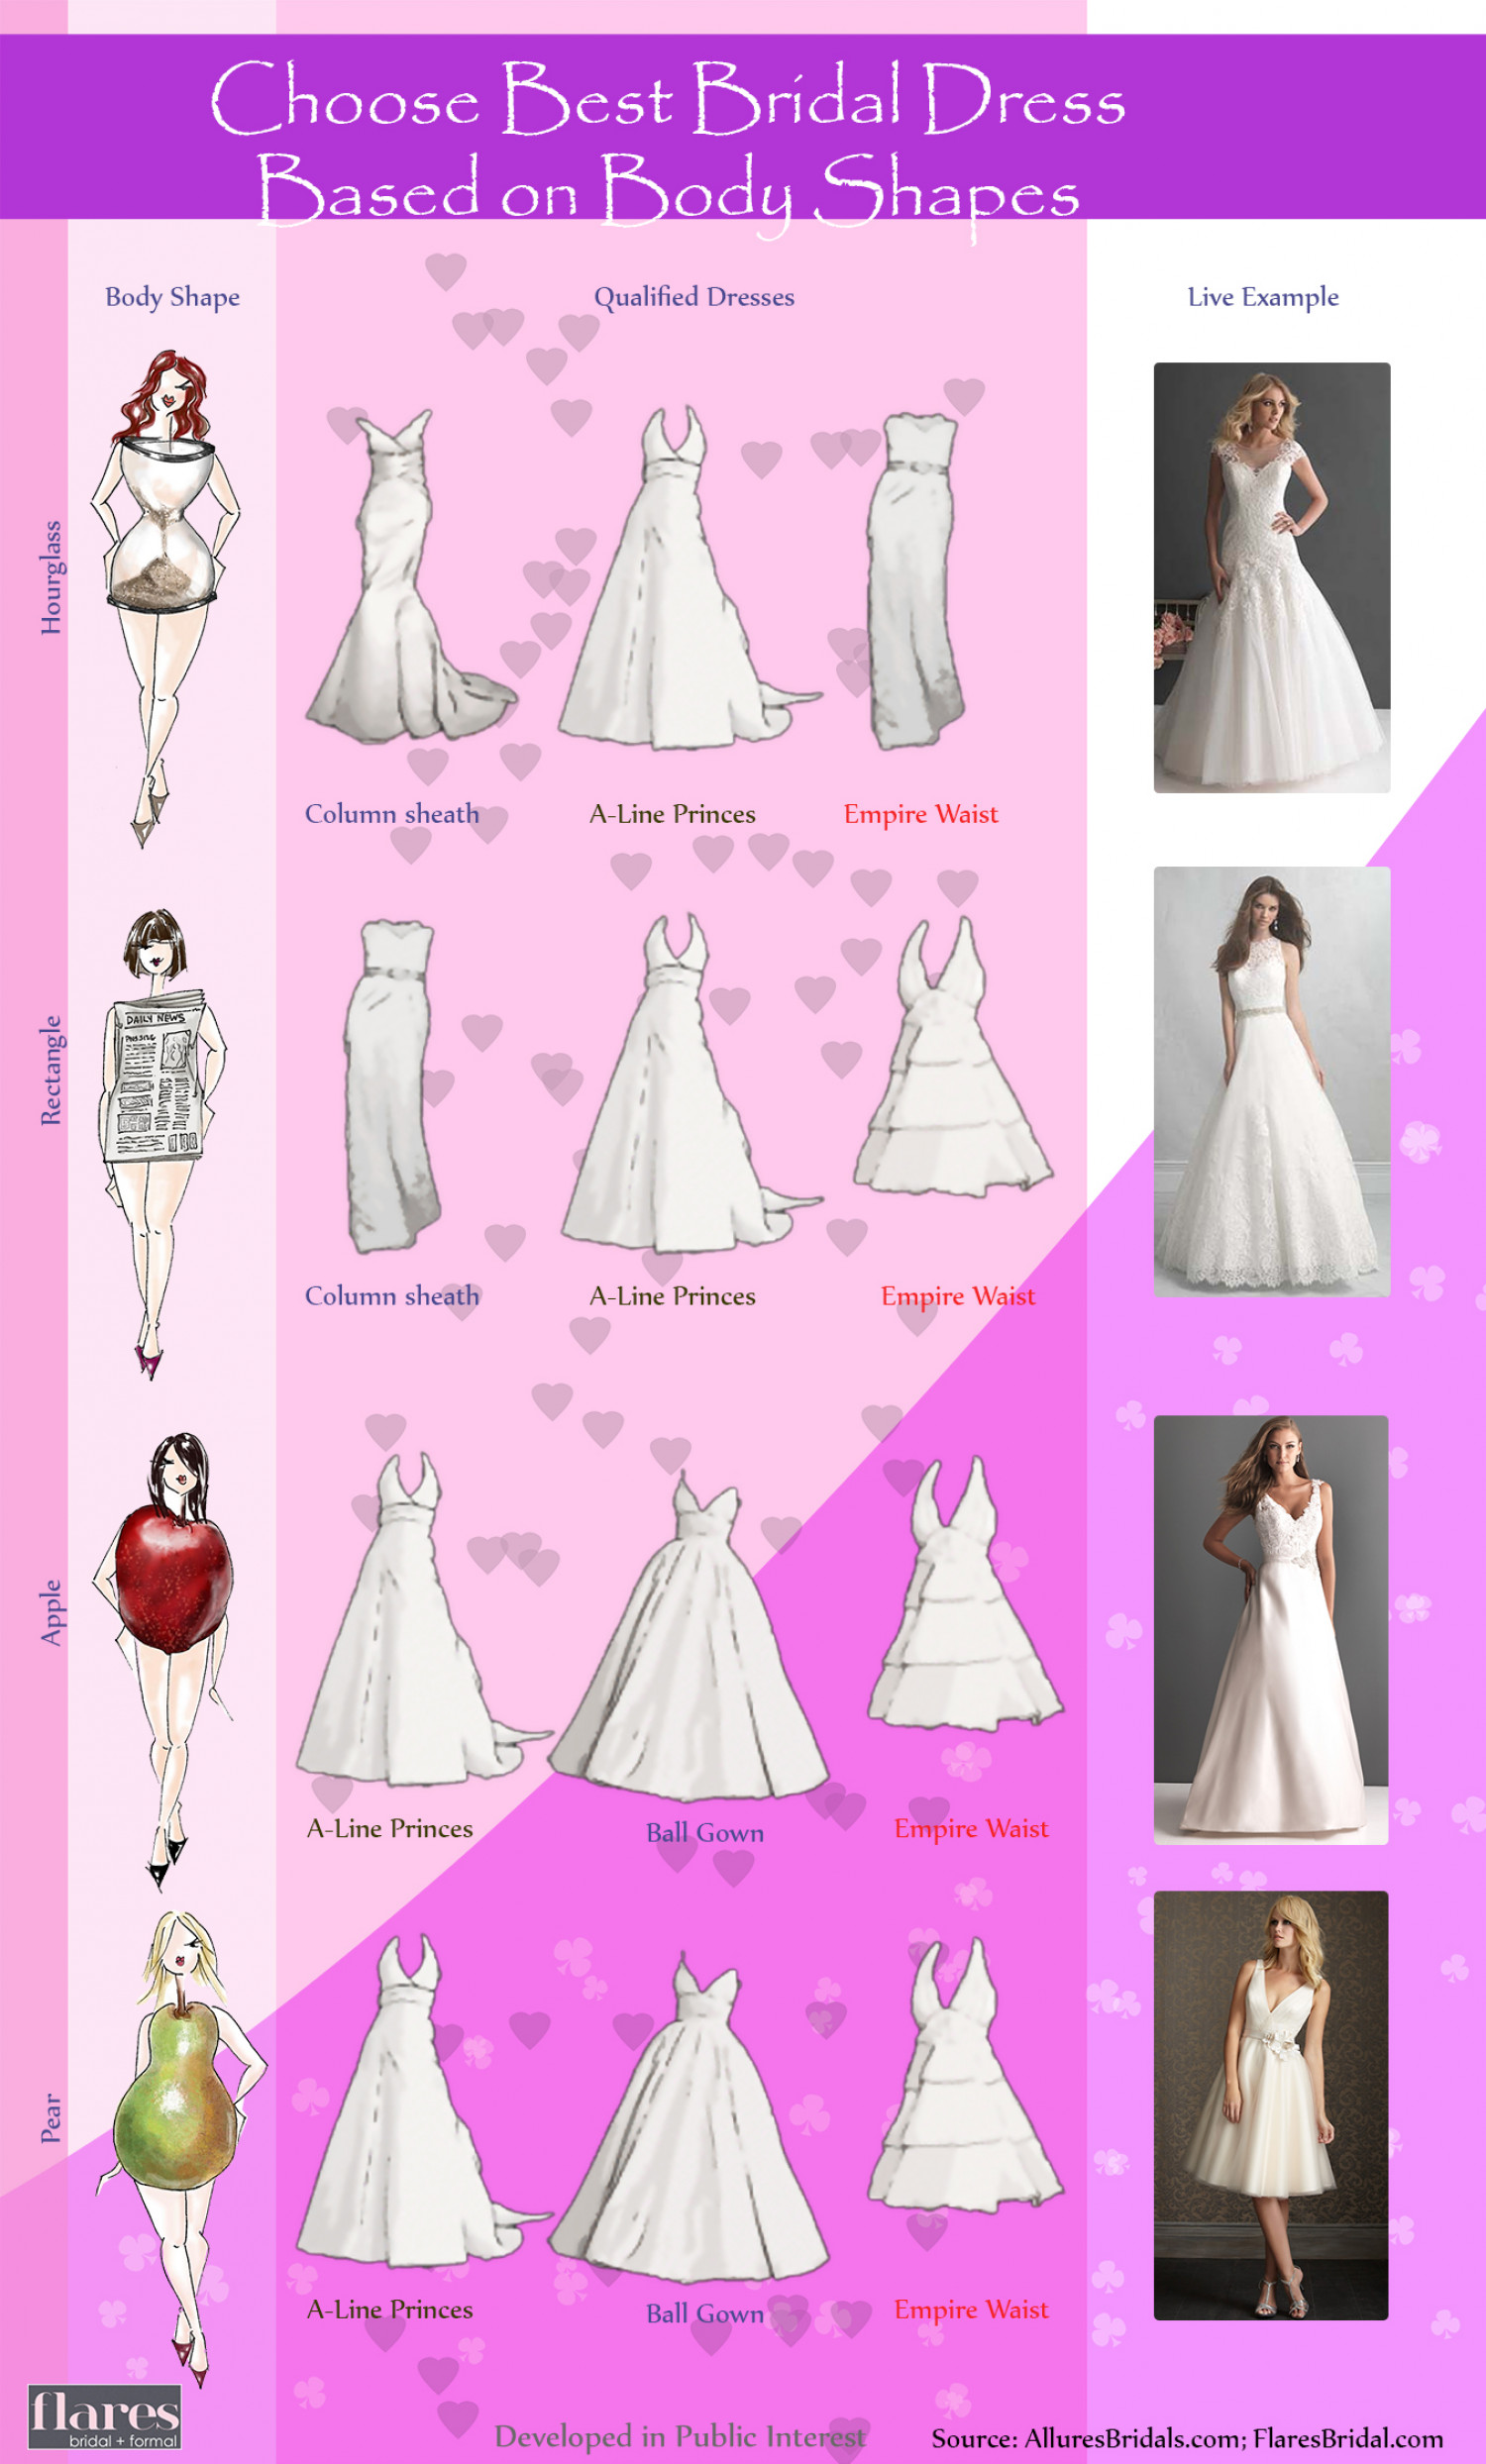 Choose Best Bridal Dress Based on Body Shapes Infographic